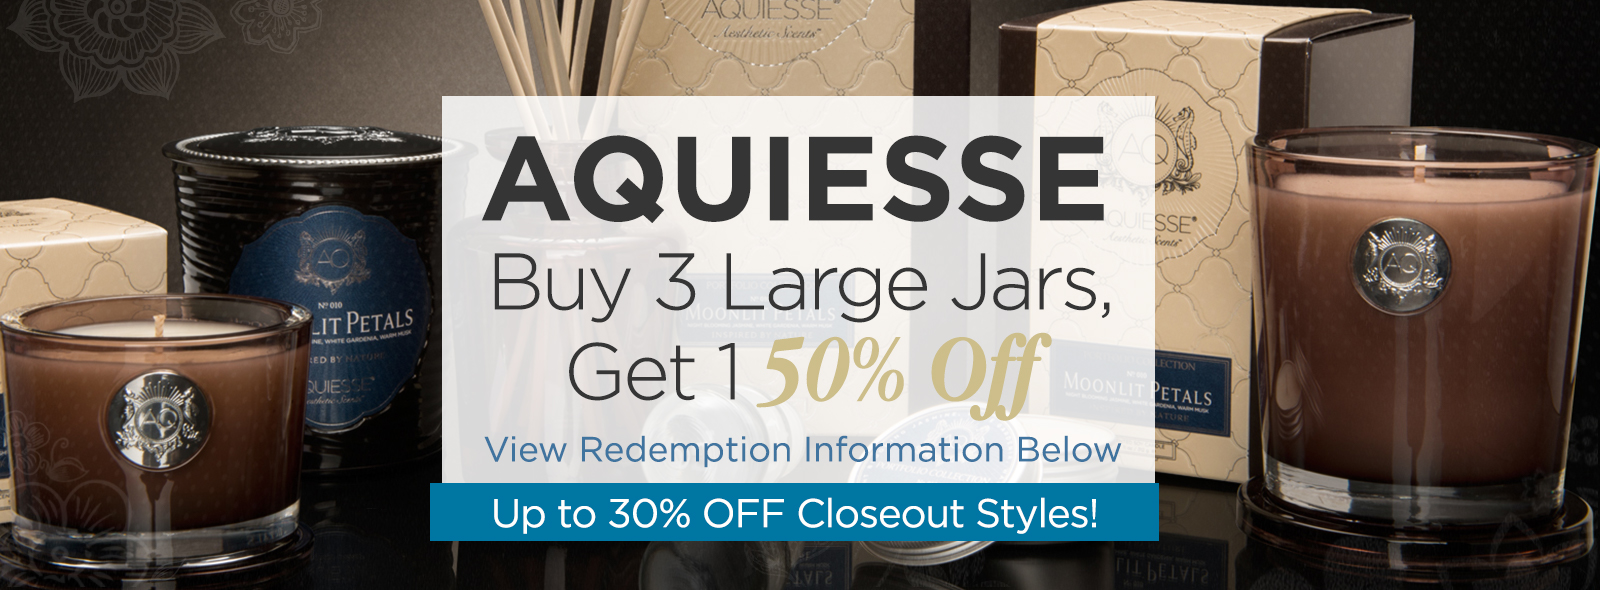 Aquiesse Candle Closeouts